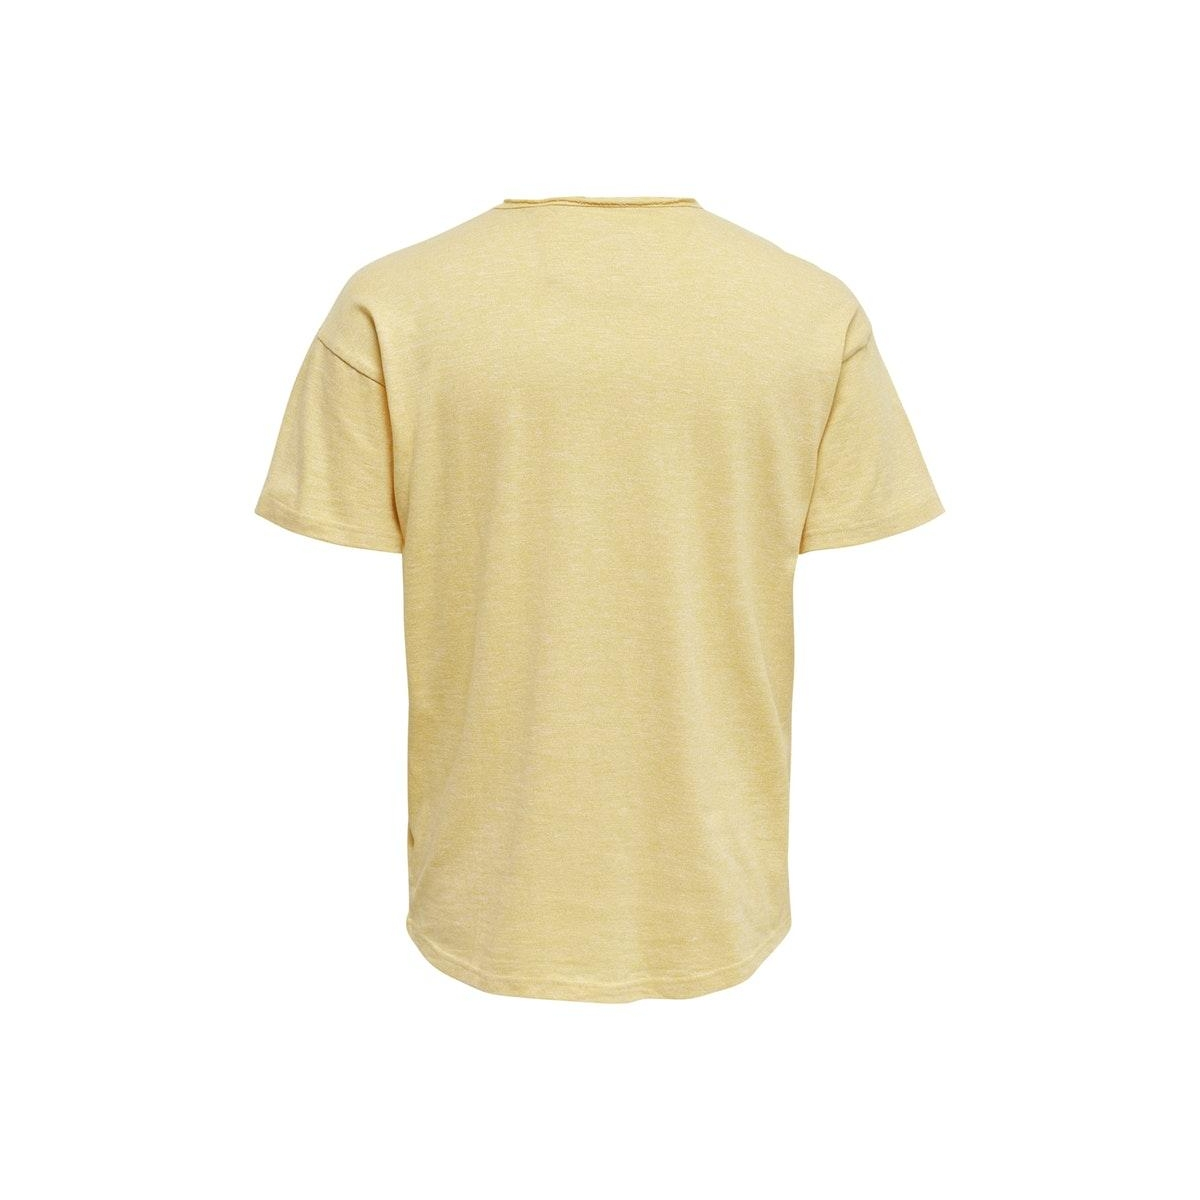 onscali life drop tee nf 6216 22016216 only & sons t-shirt misted yellow